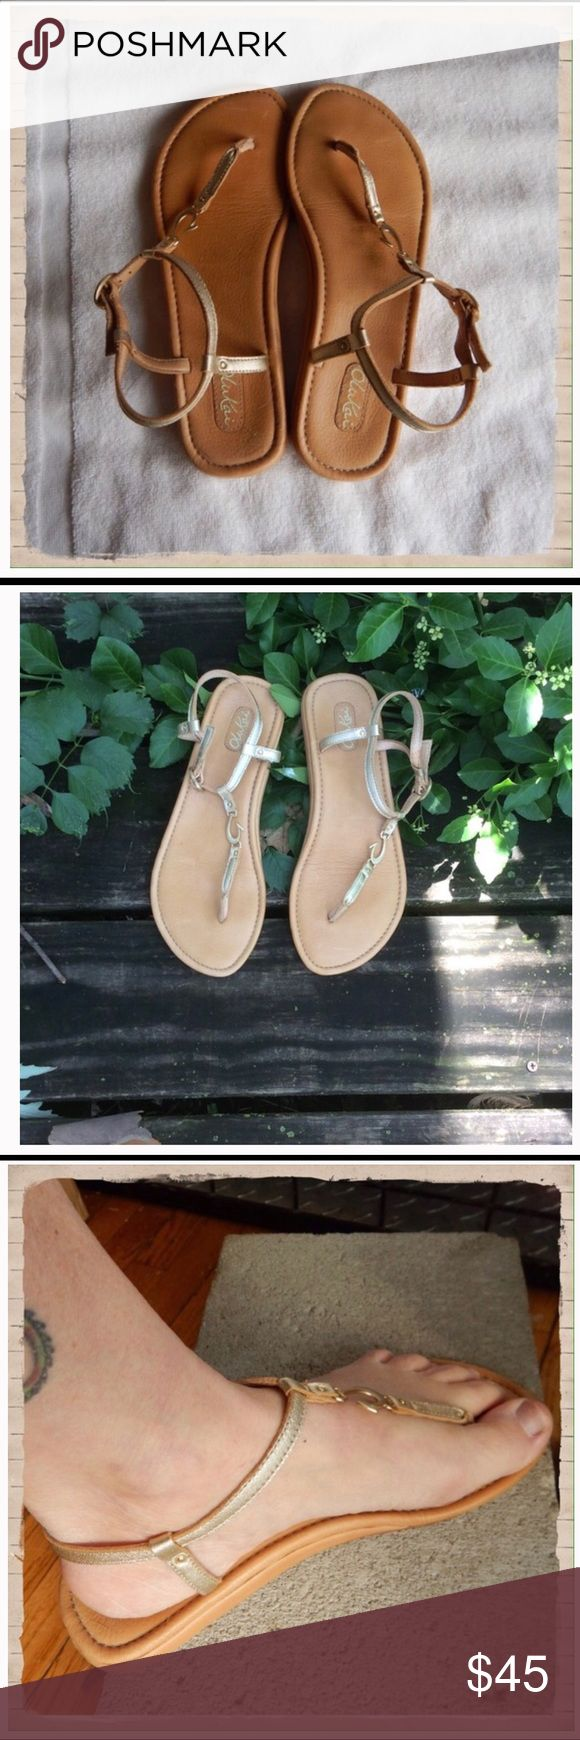 OluKai Gold Leather Sandals Worn once, these beautiful sandals have the OluKai trademark Hawaiian fishhook in gold metal in the center strap. Cushioned leather insole, leather sole with rubber at the heel for better traction. OluKai Shoes Sandals